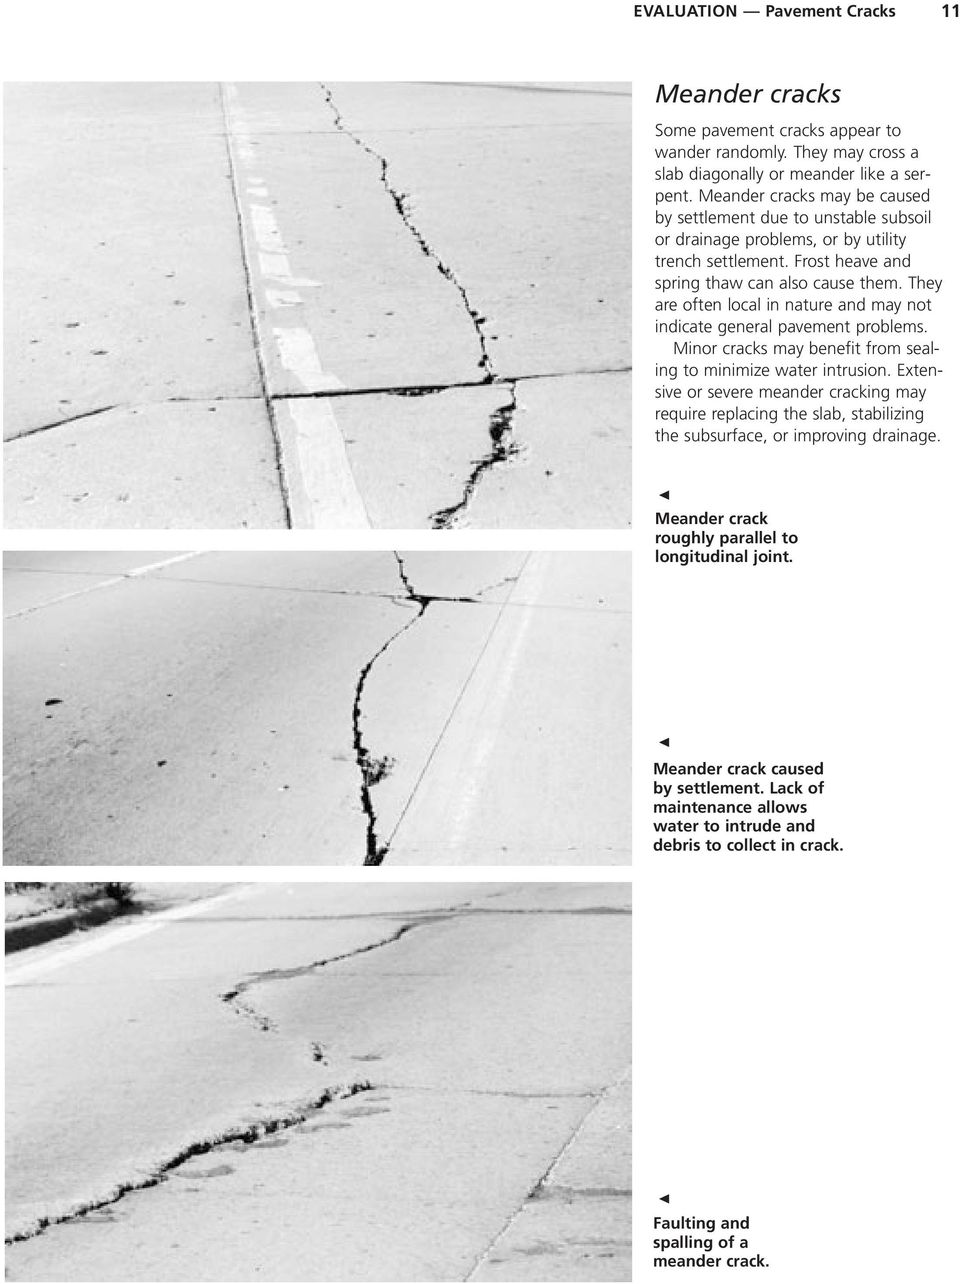 They are often local in nature and may not indicate general pavement problems. Minor cracks may benefit from sealing to minimize water intrusion.